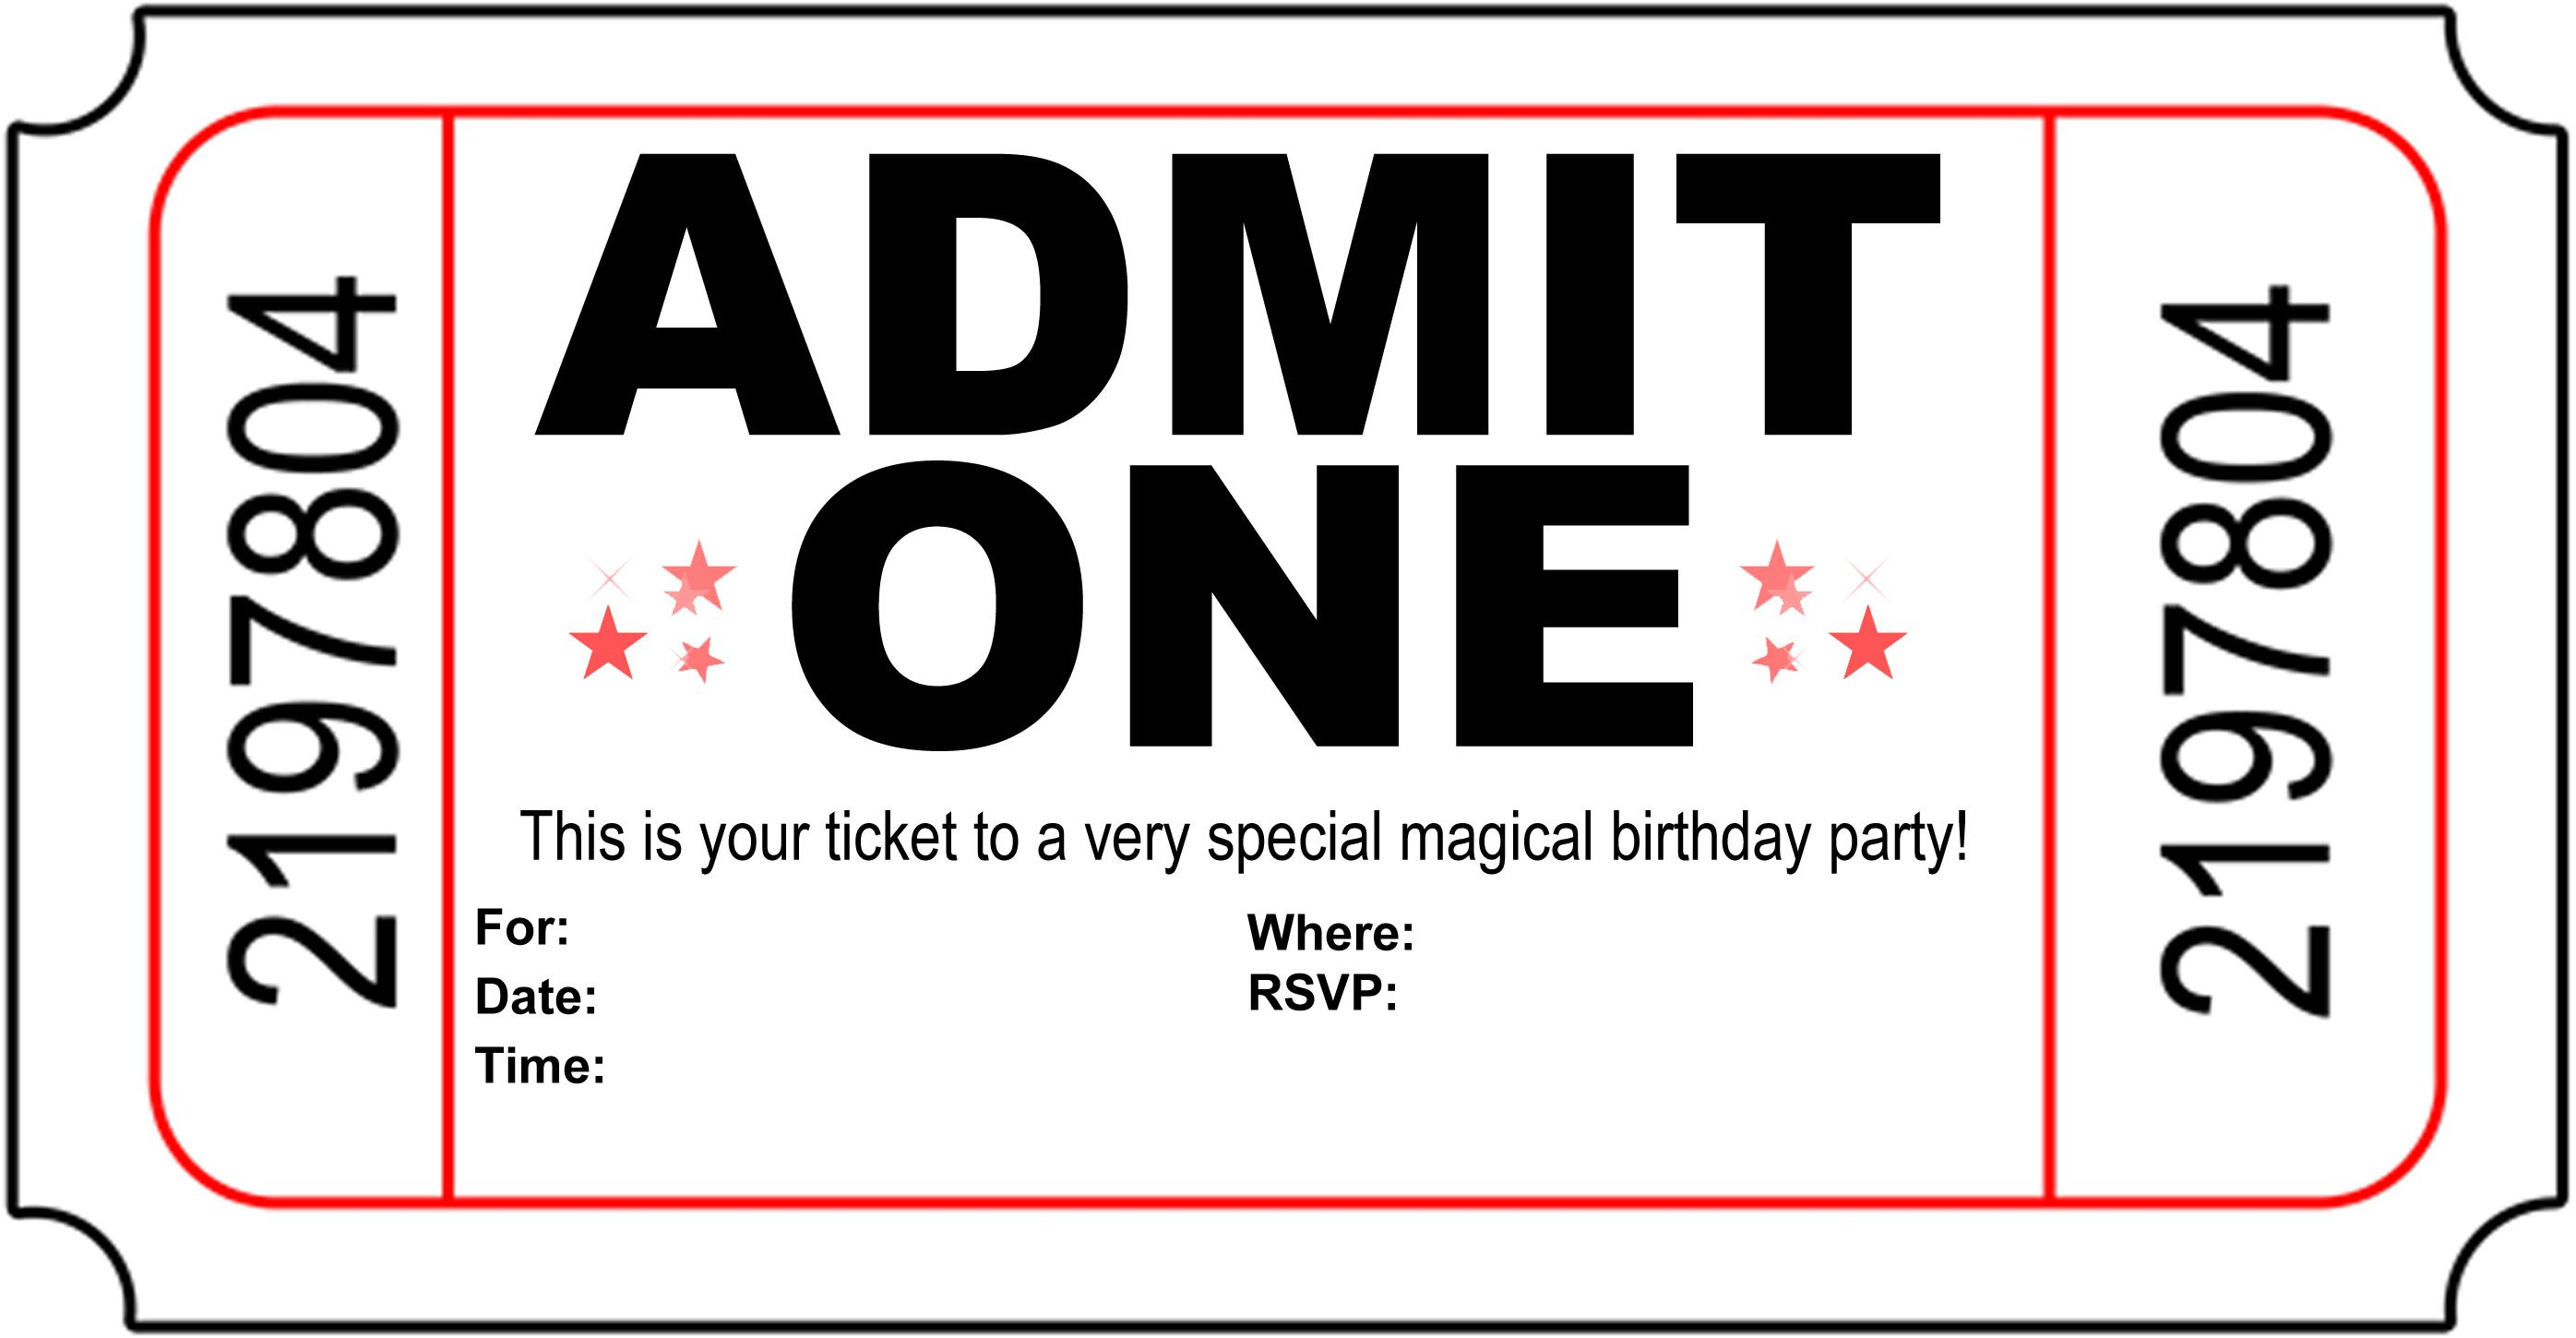 Nice birthday party invitations free free templates invitations nice birthday party invitations free free templates filmwisefo Images